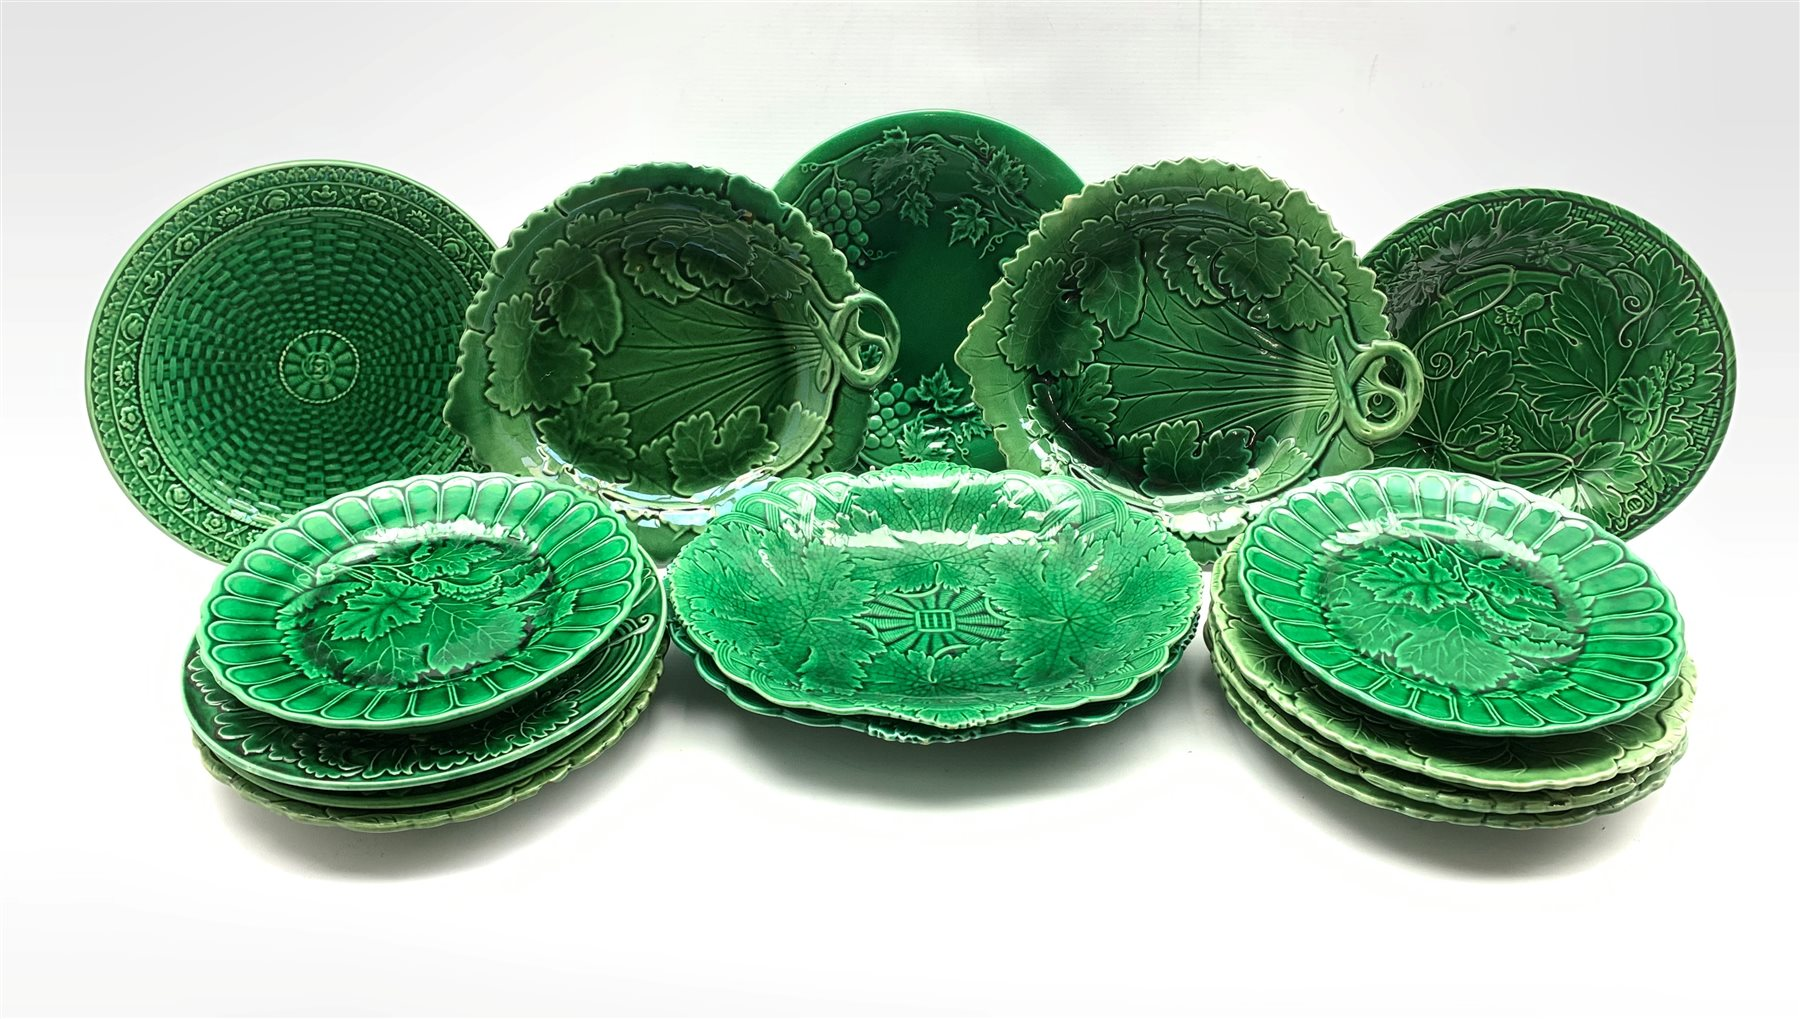 Pair of 19th century Wedgwood green glazed leaf moulded oval shallow dishes W28cm, pair of similar p